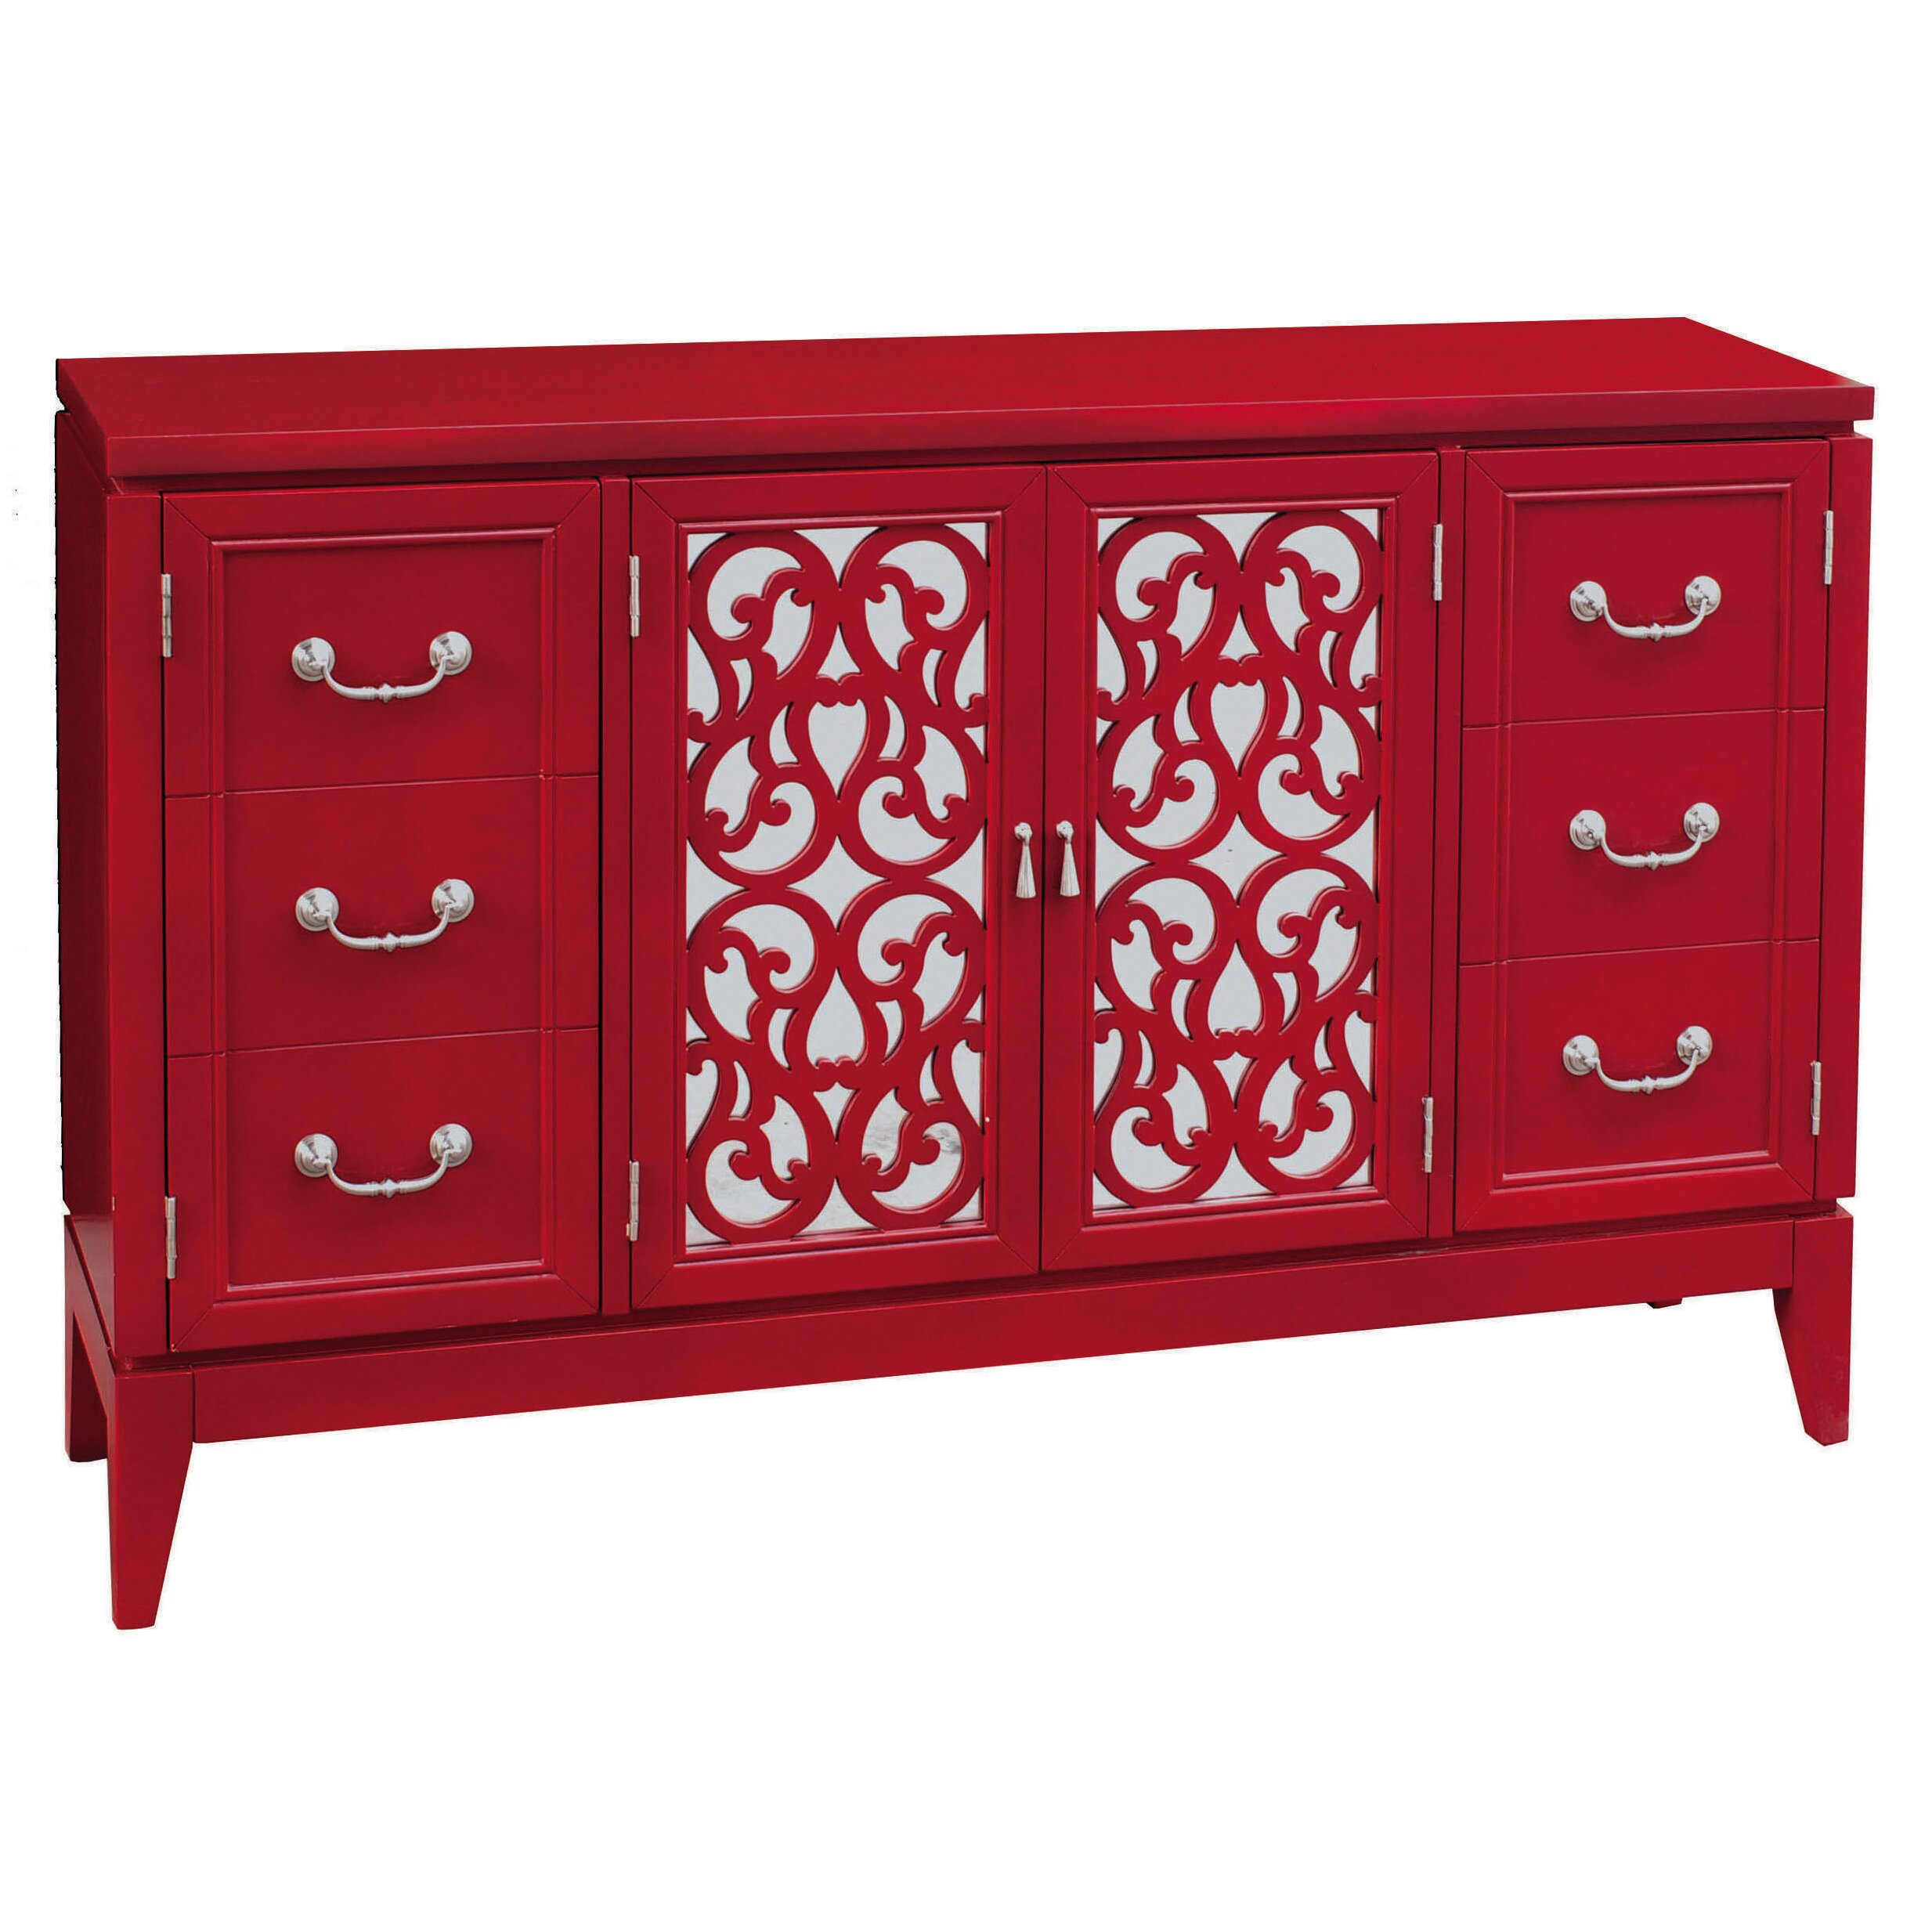 Pulaski console 4 door cabinet reviews for Furniture 2 day shipping